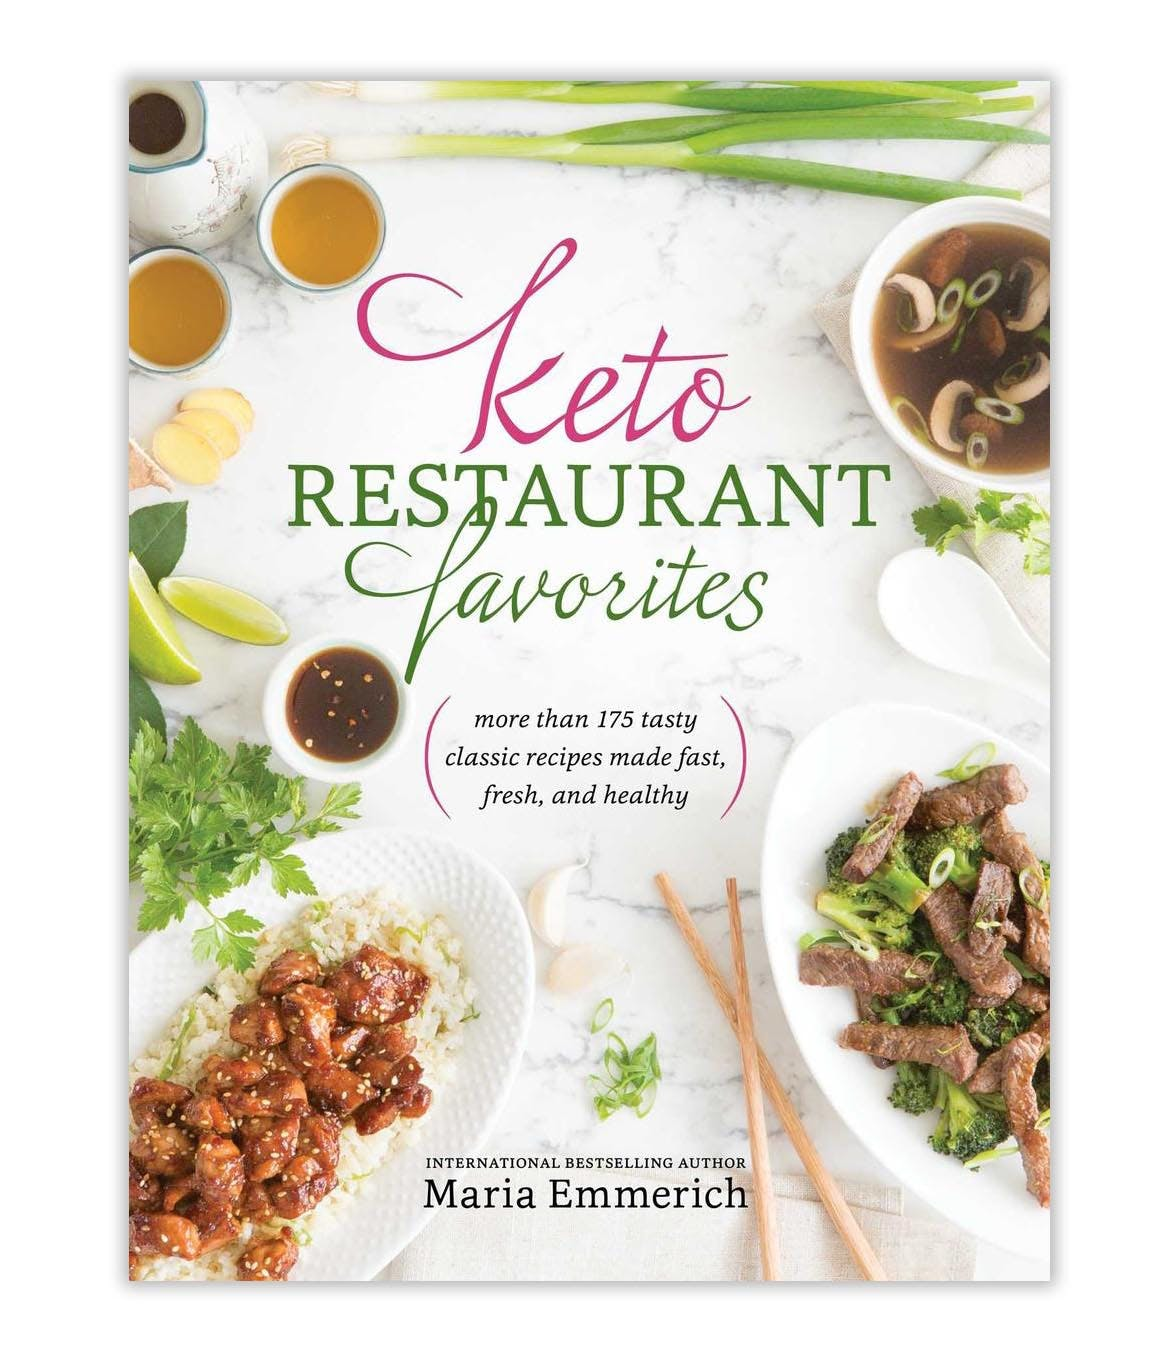 keto-restaurant-favorites